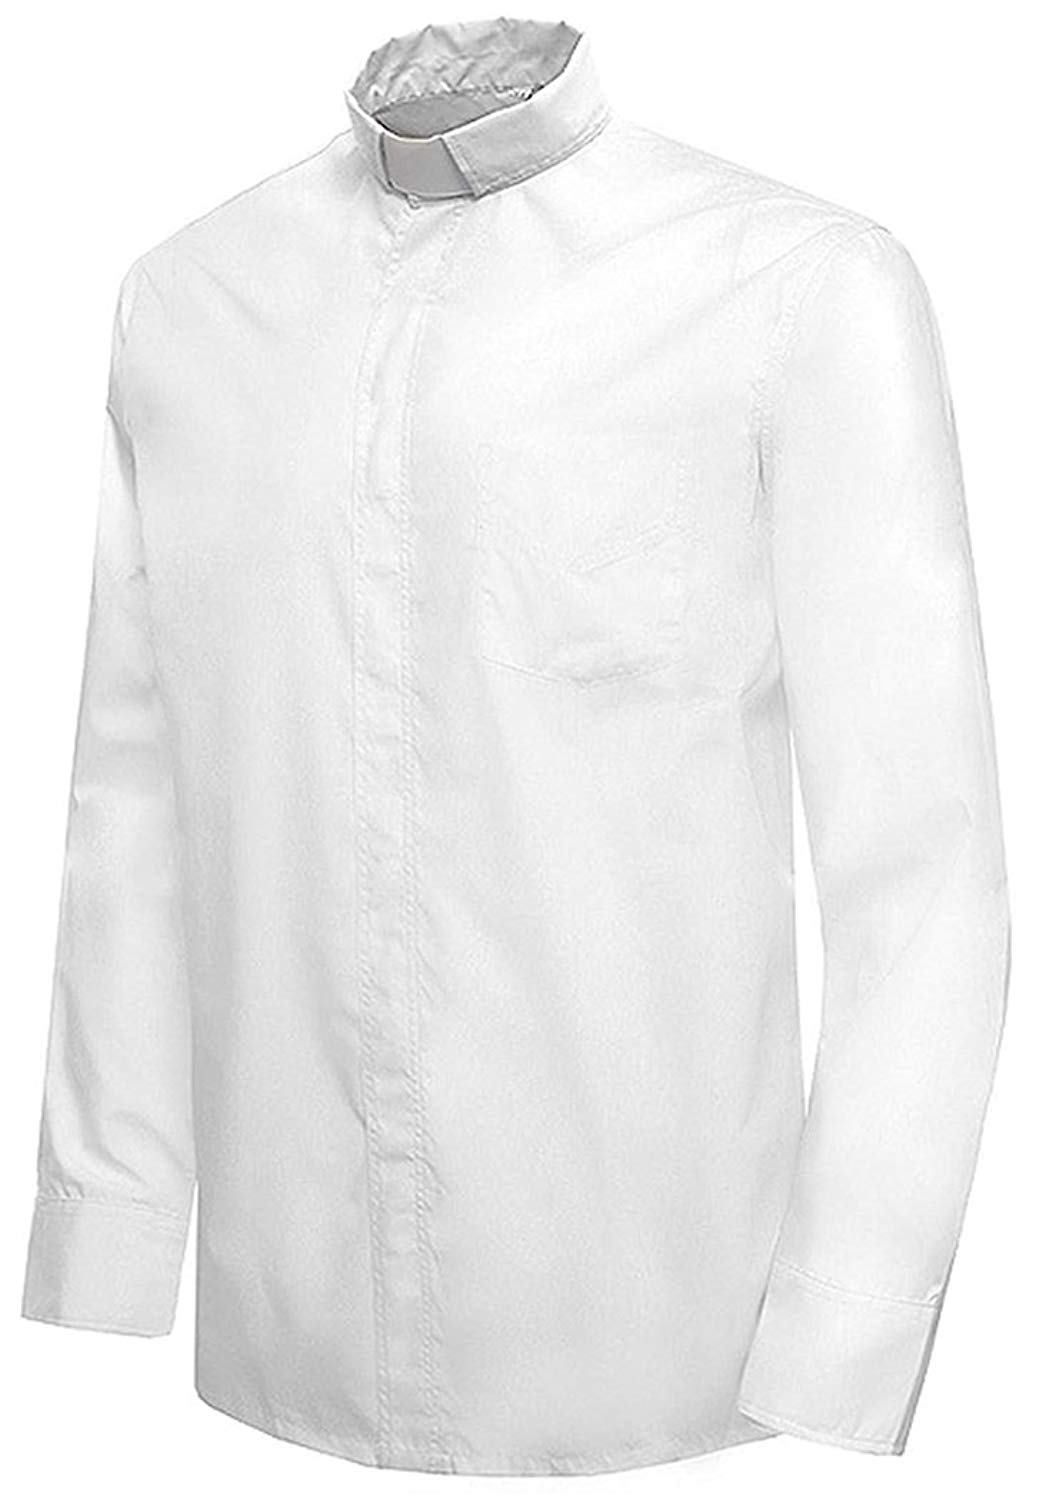 Cheap Clergy Shirt Find Clergy Shirt Deals On Line At Alibaba